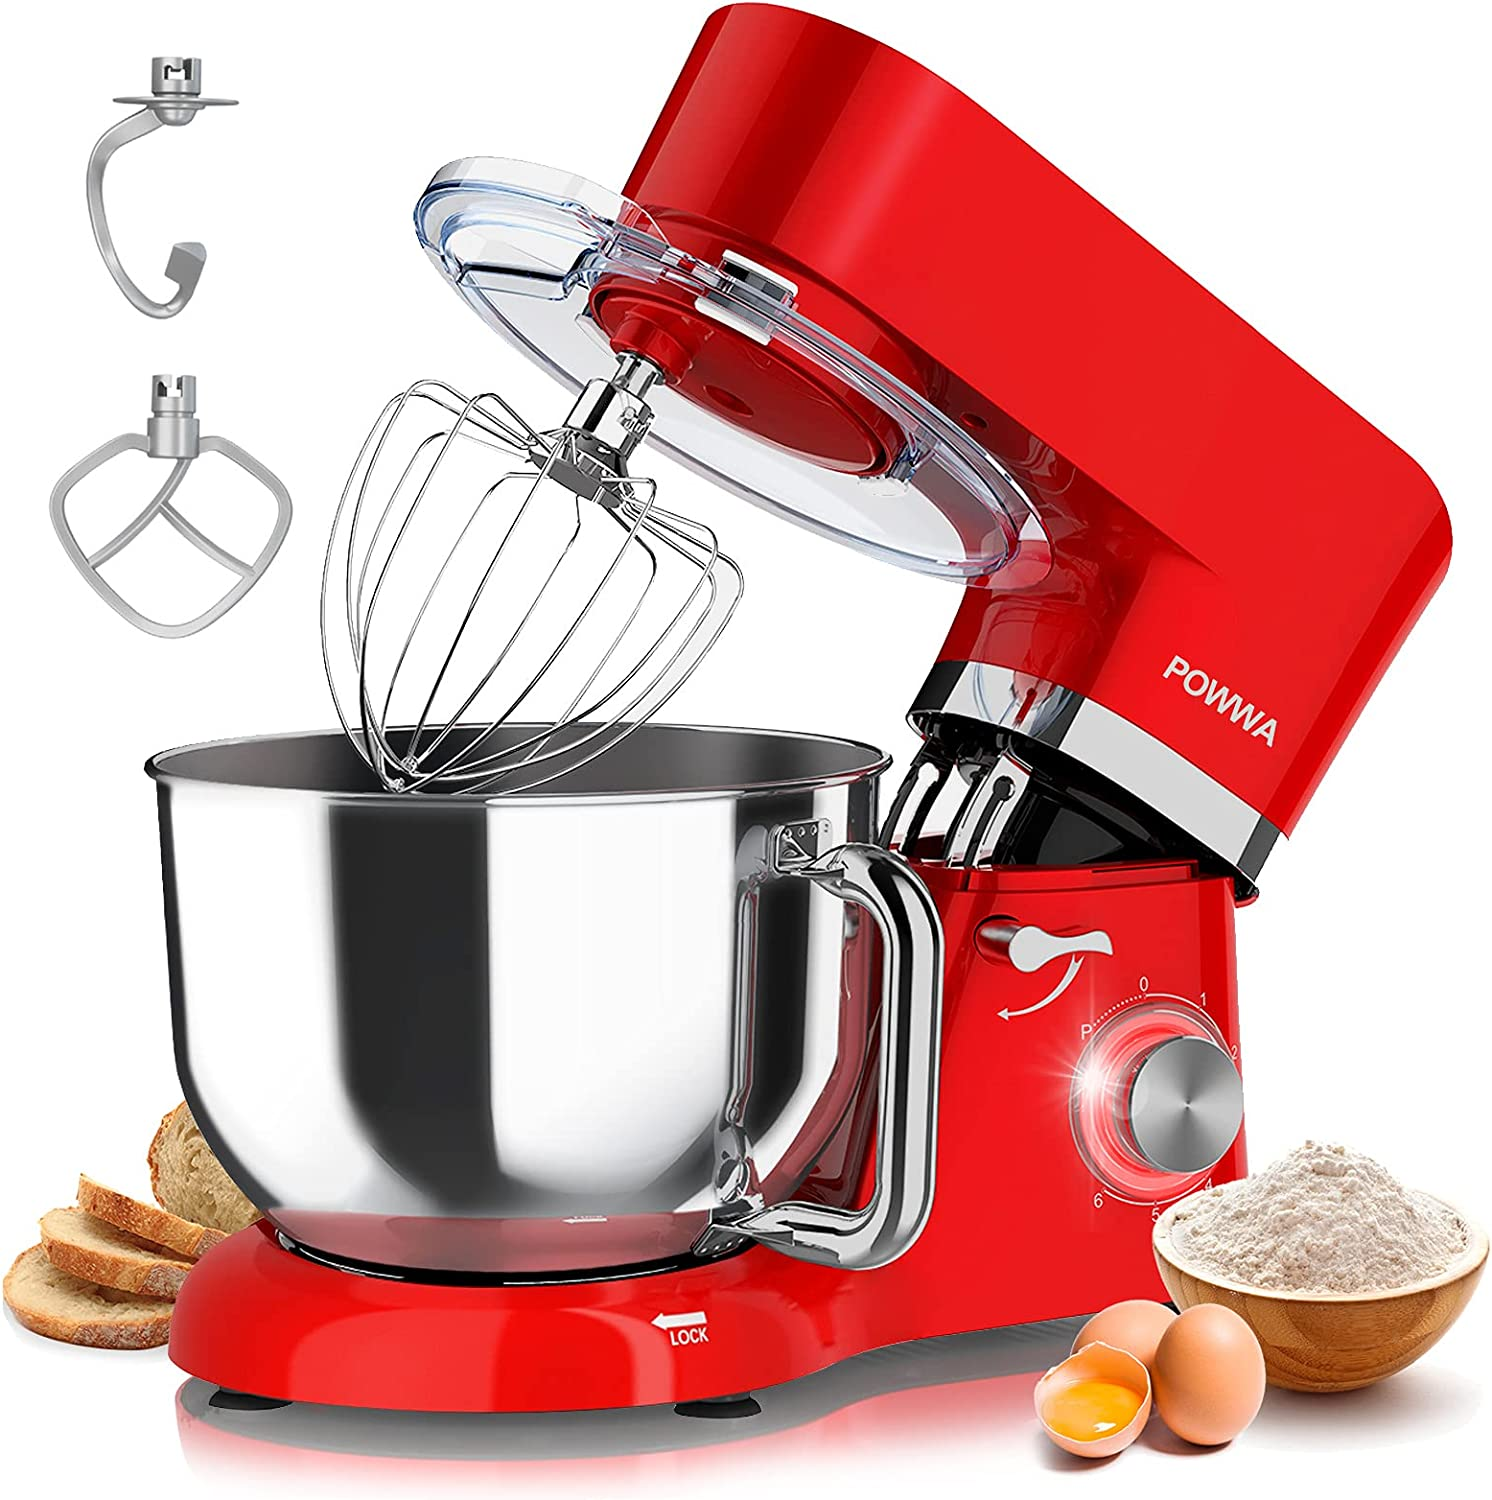 Stand Mixer POWWA 6 Speed Free shipping anywhere in the 35% OFF nation 660W Electric Tilt-Head Kitchen